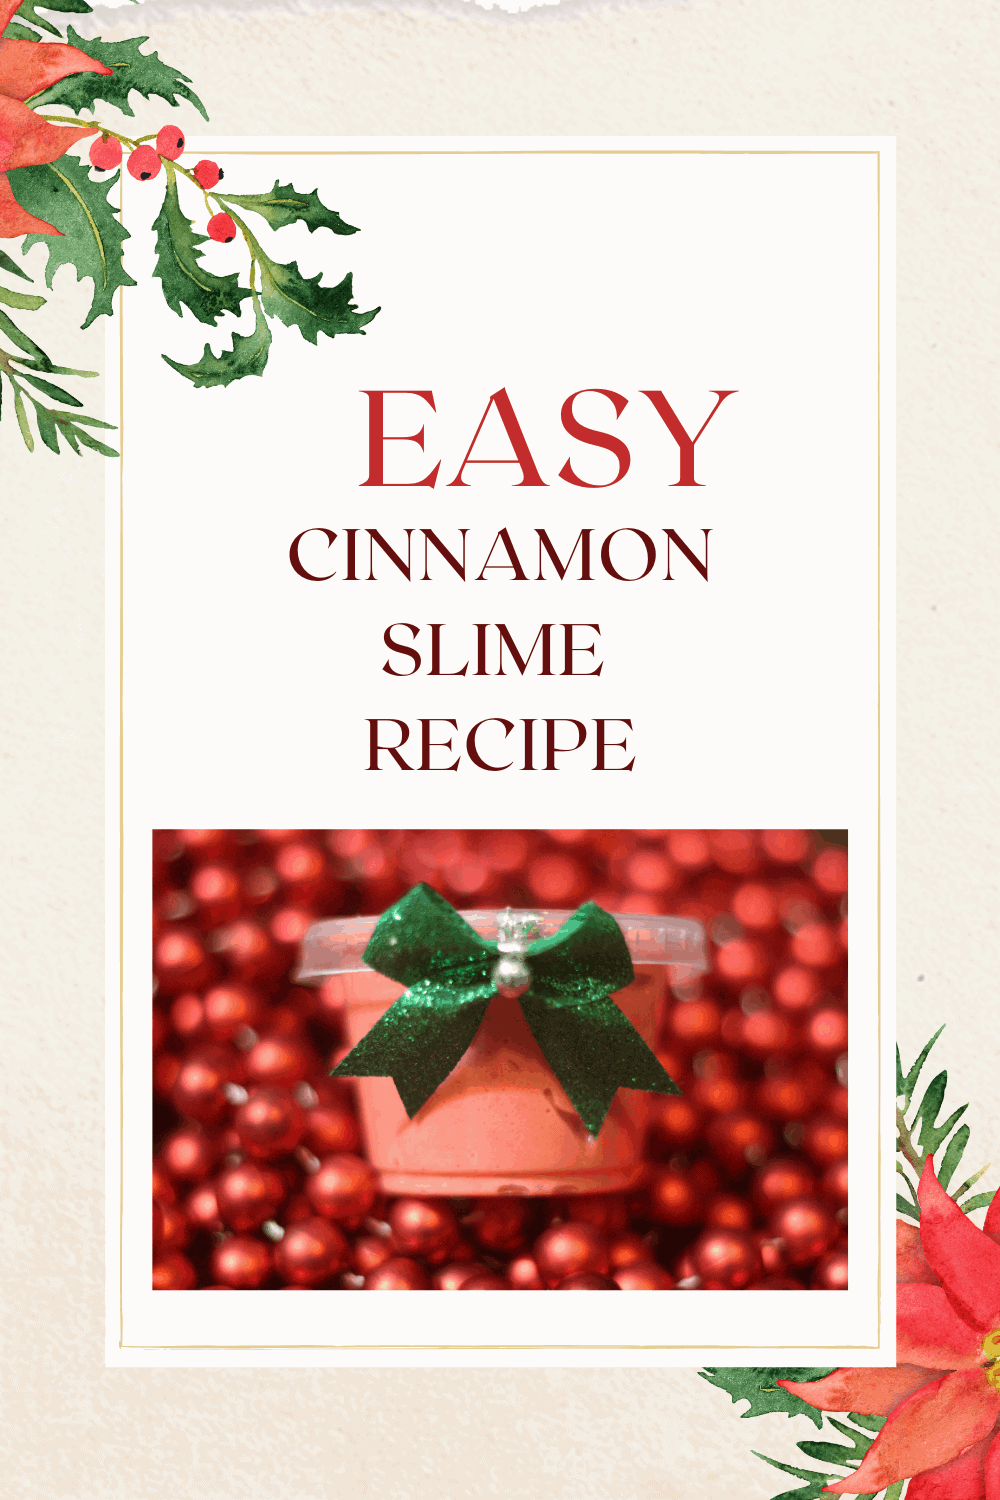 Cinnamon slime recipe perfect as a Christmas slime recipe or as a holiday party favor idea. This cinnamon slime smells amazing!